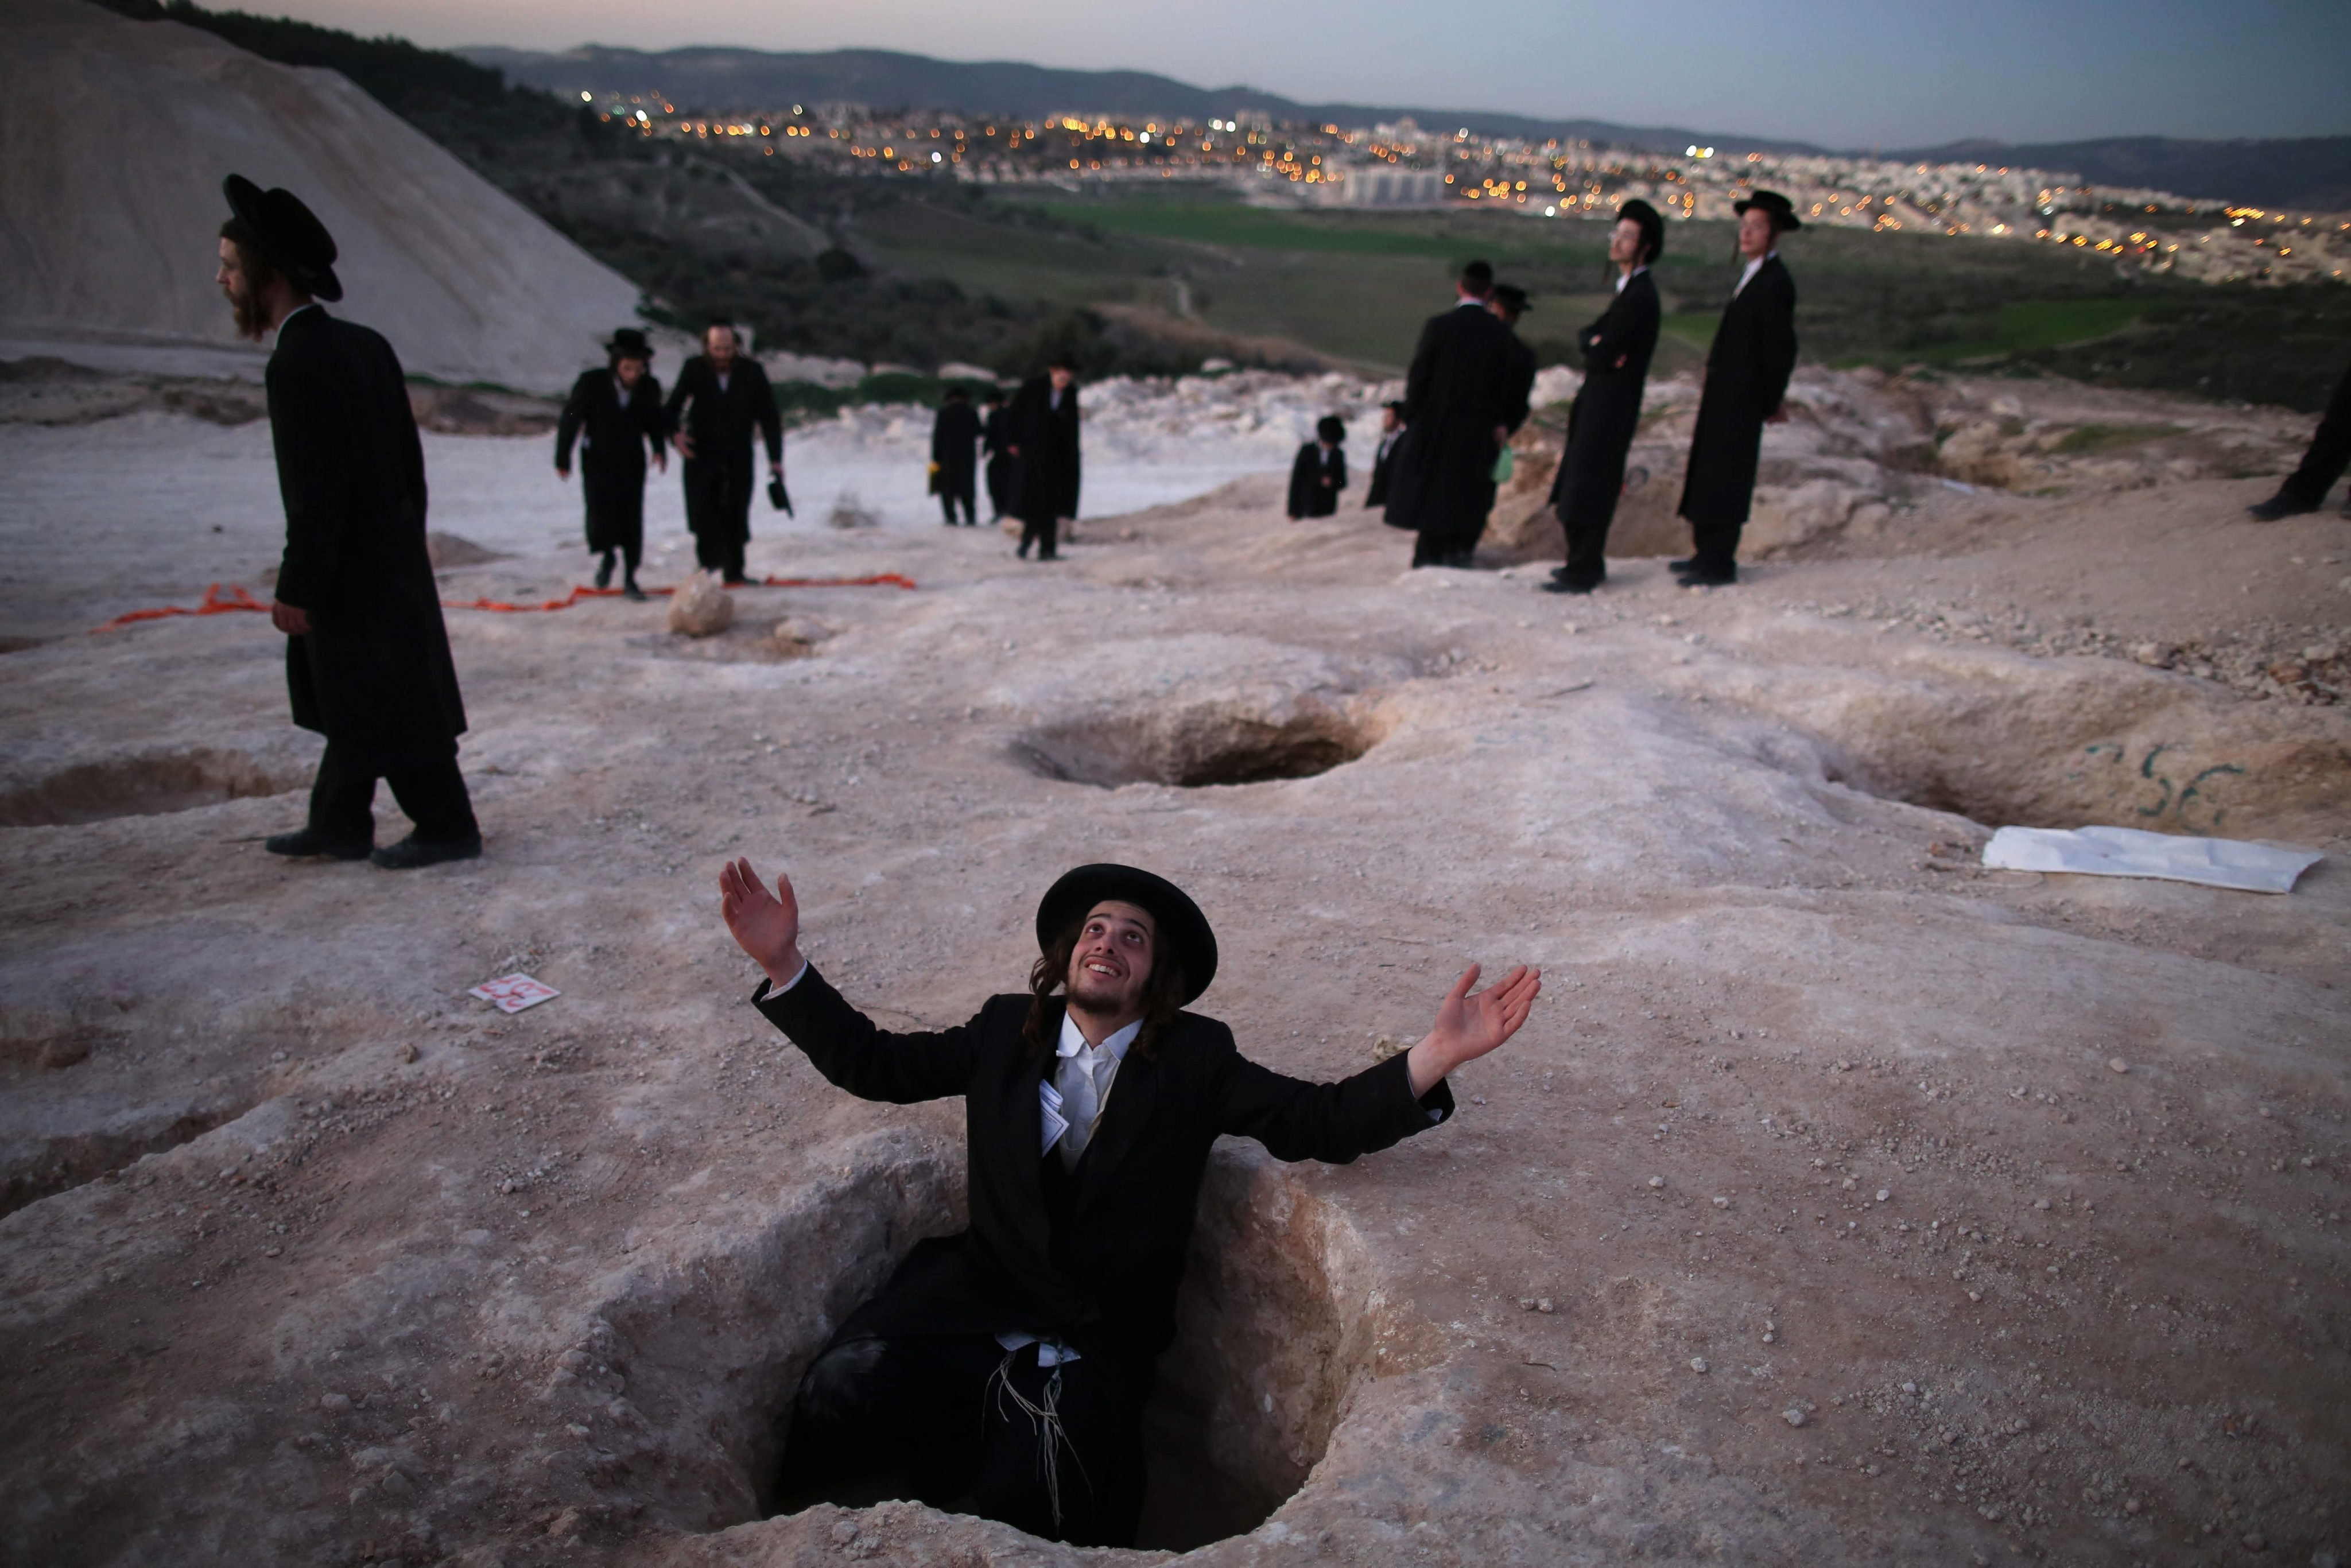 An Ultra-Orthodox Jewish man sits in a hole and prays during a demonstration in Beit Shemesh, Israel, Feb. 12, 2014. Hundreds of Ultra-Orthodox Jews protested against the construction of new housing units, believing they would be built at the site of ancient Jewish graves.